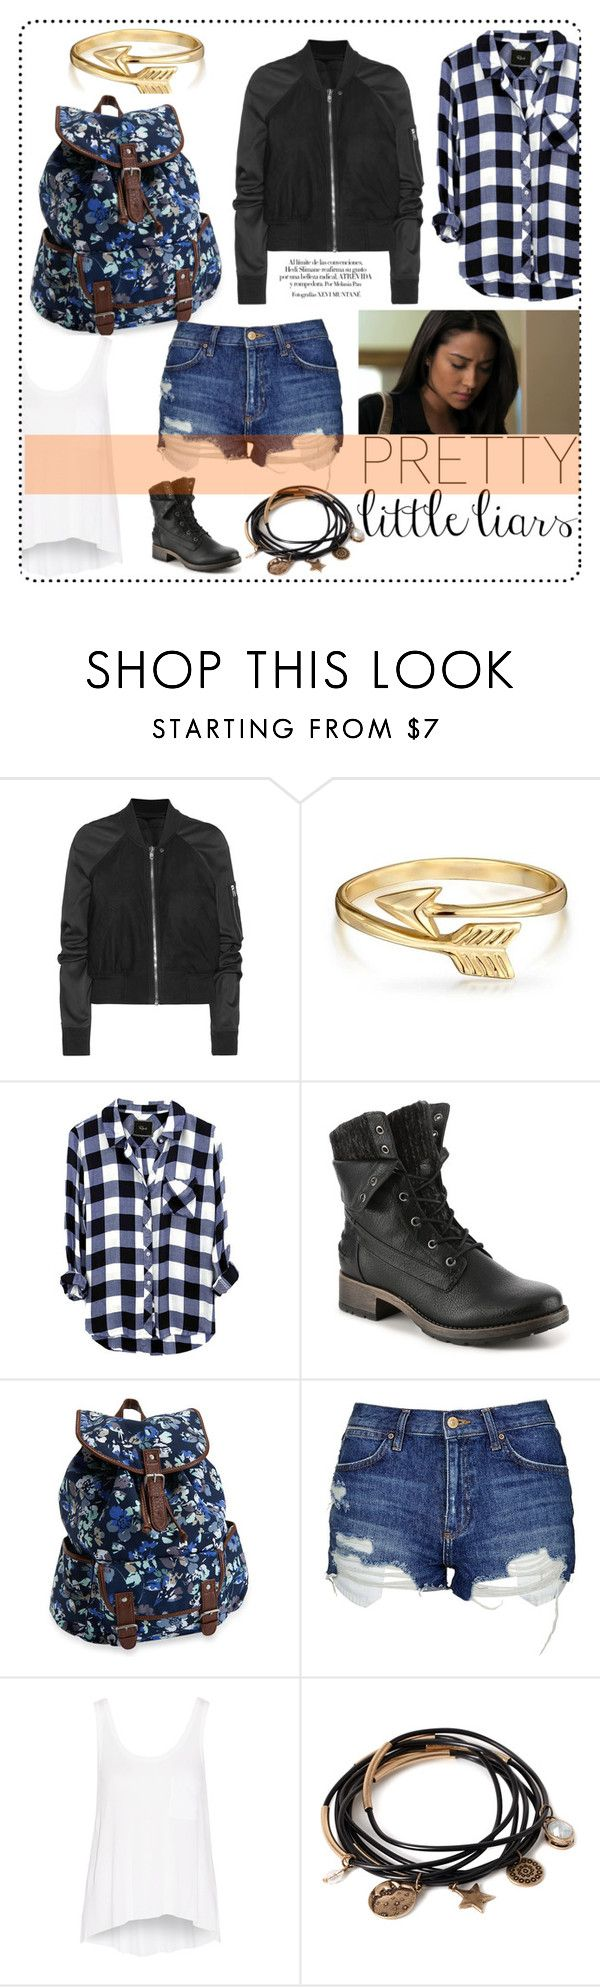 """""""Pretty Little Liars: Emily"""" by littledesigns ❤ liked on Polyvore featuring Rick Owens, Bling Jewelry, Aéropostale, Topshop, rag & bone and Forever 21"""